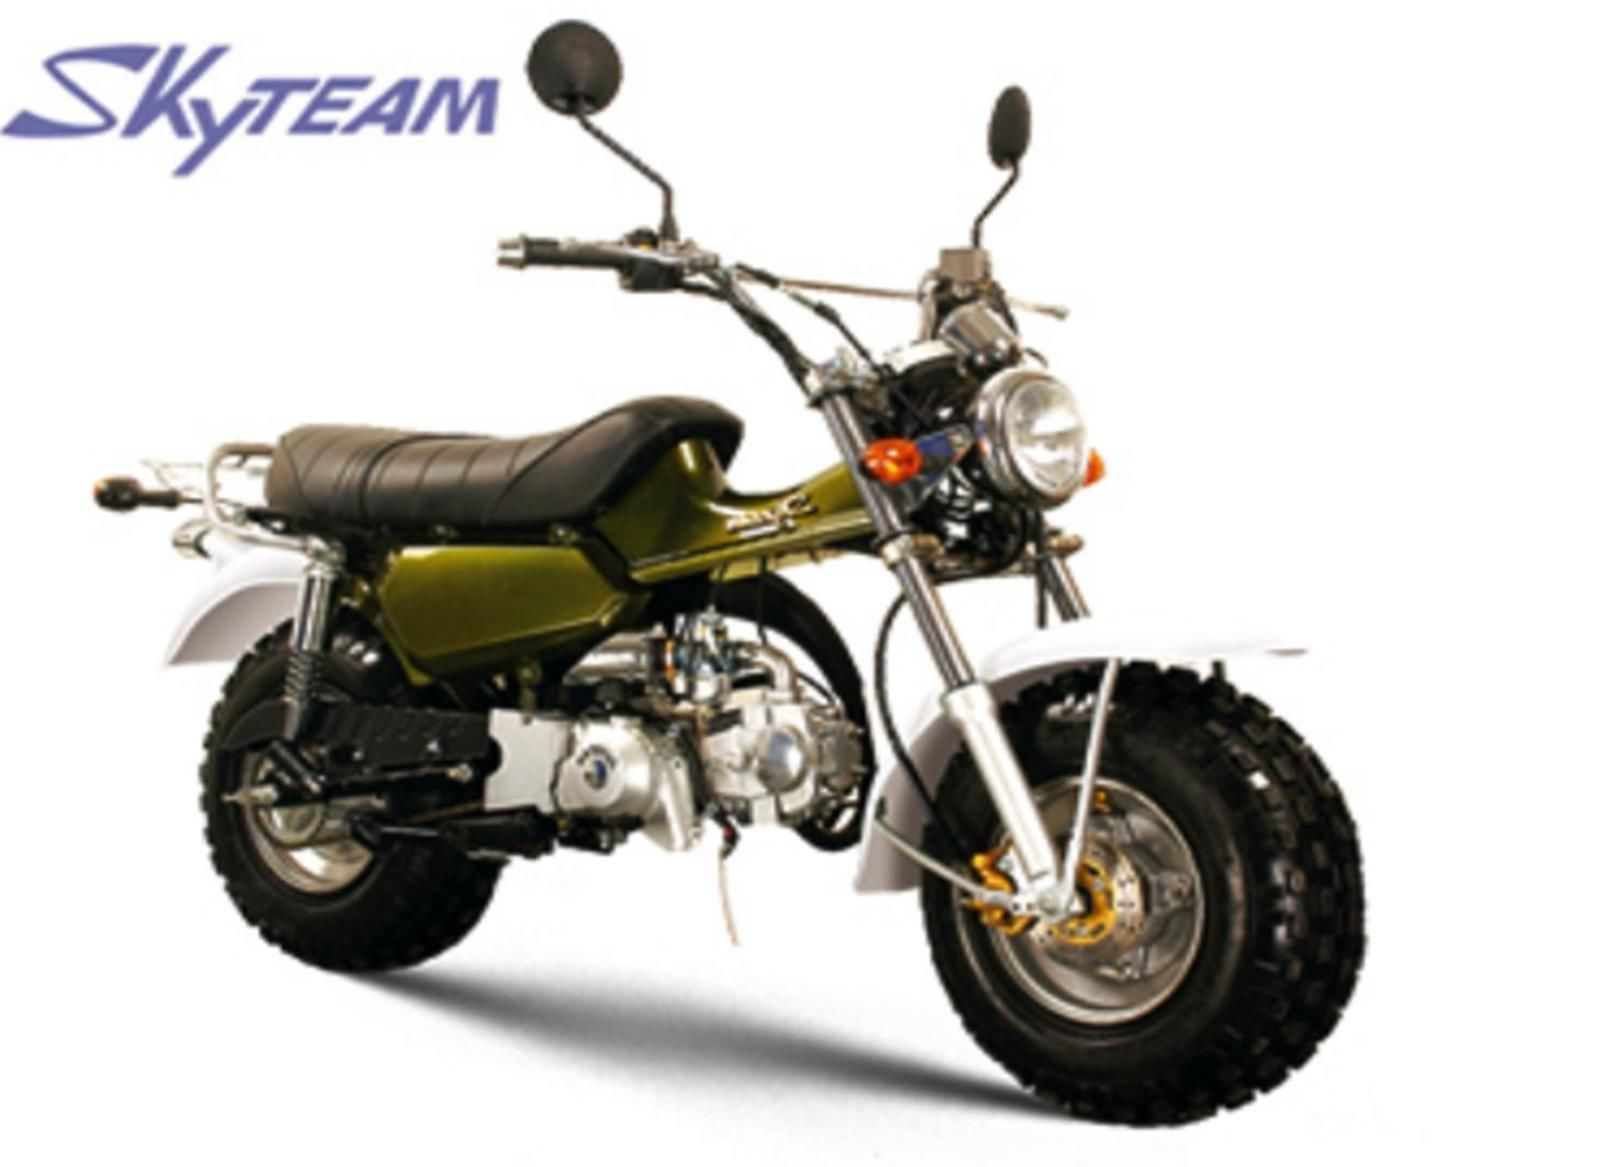 skyteam t rex 50 moped new 50cc based on suzuki rv125 sand. Black Bedroom Furniture Sets. Home Design Ideas